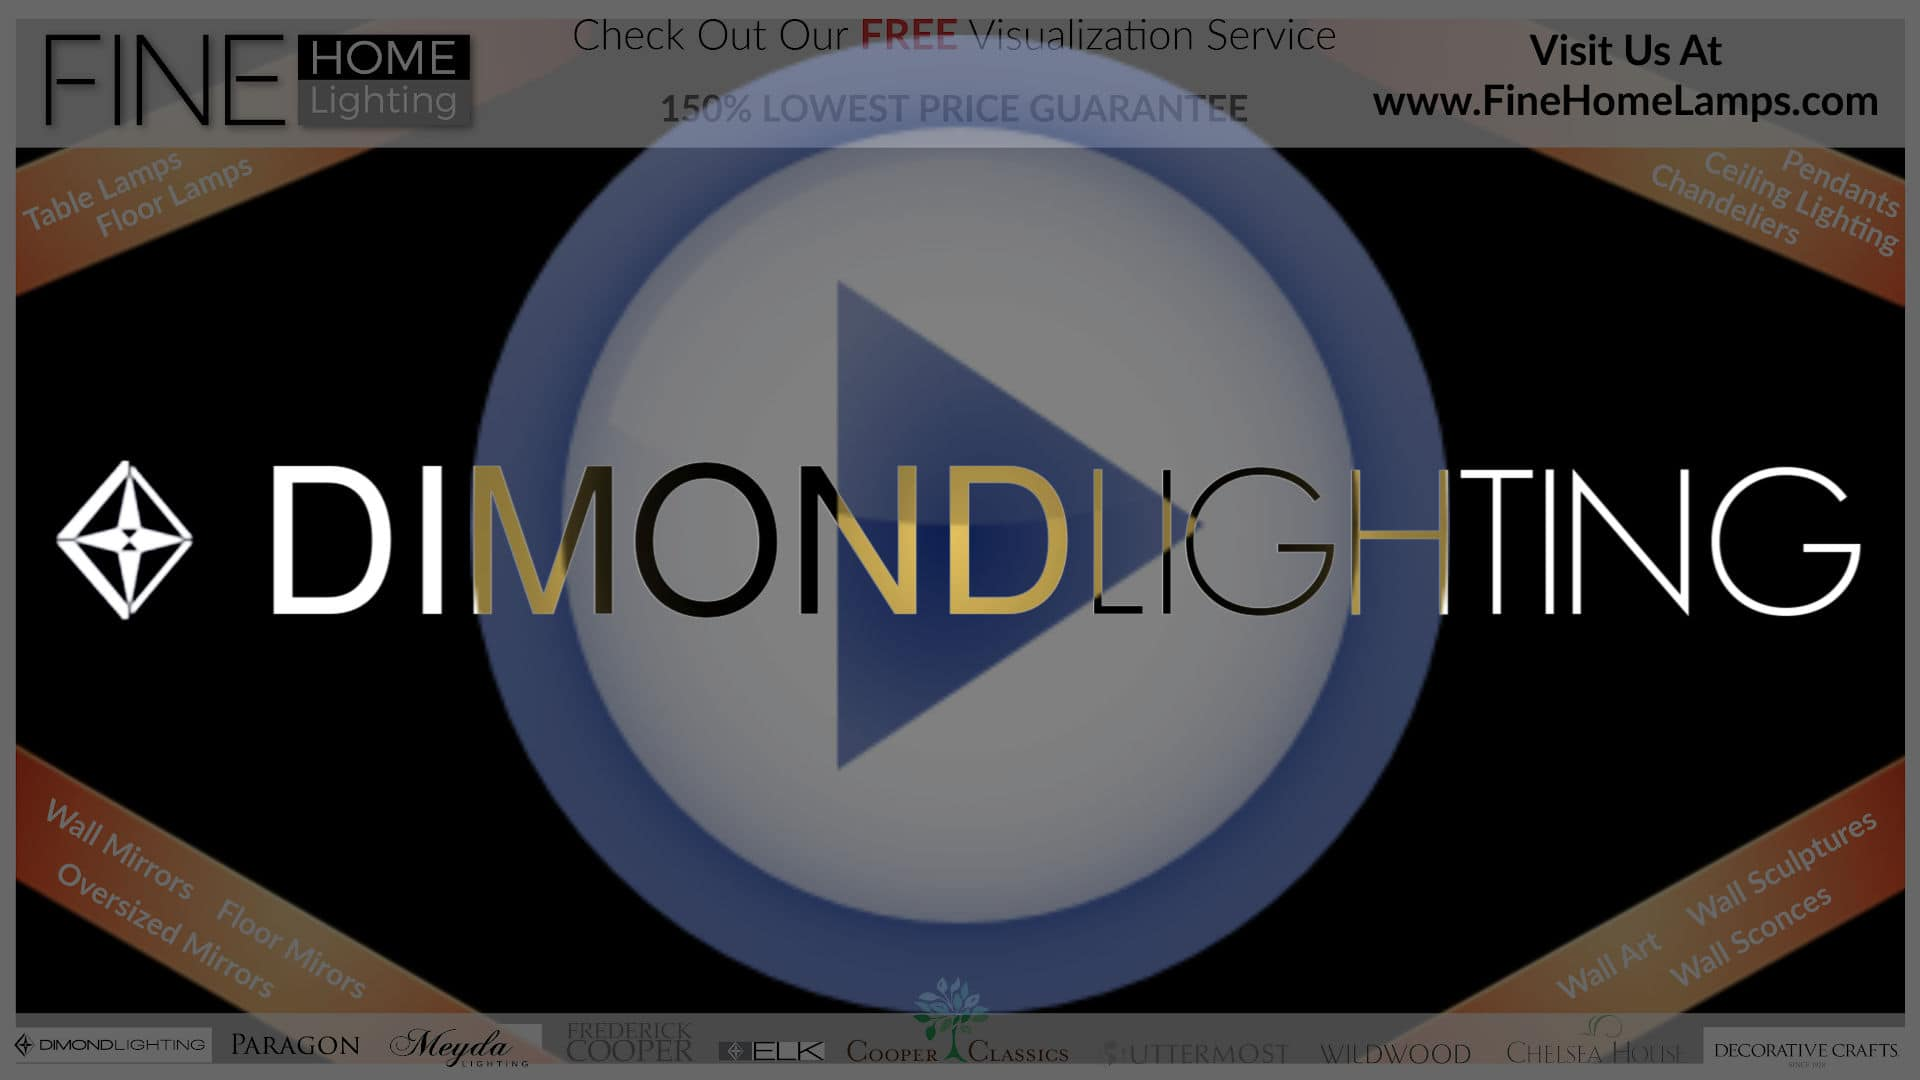 DIMOND-LIGHTING-Thanks-for-watching-this-video-Get-an-additional-15-percent-off-your-next-purchase-Use-Coupon-Code-VIDEO